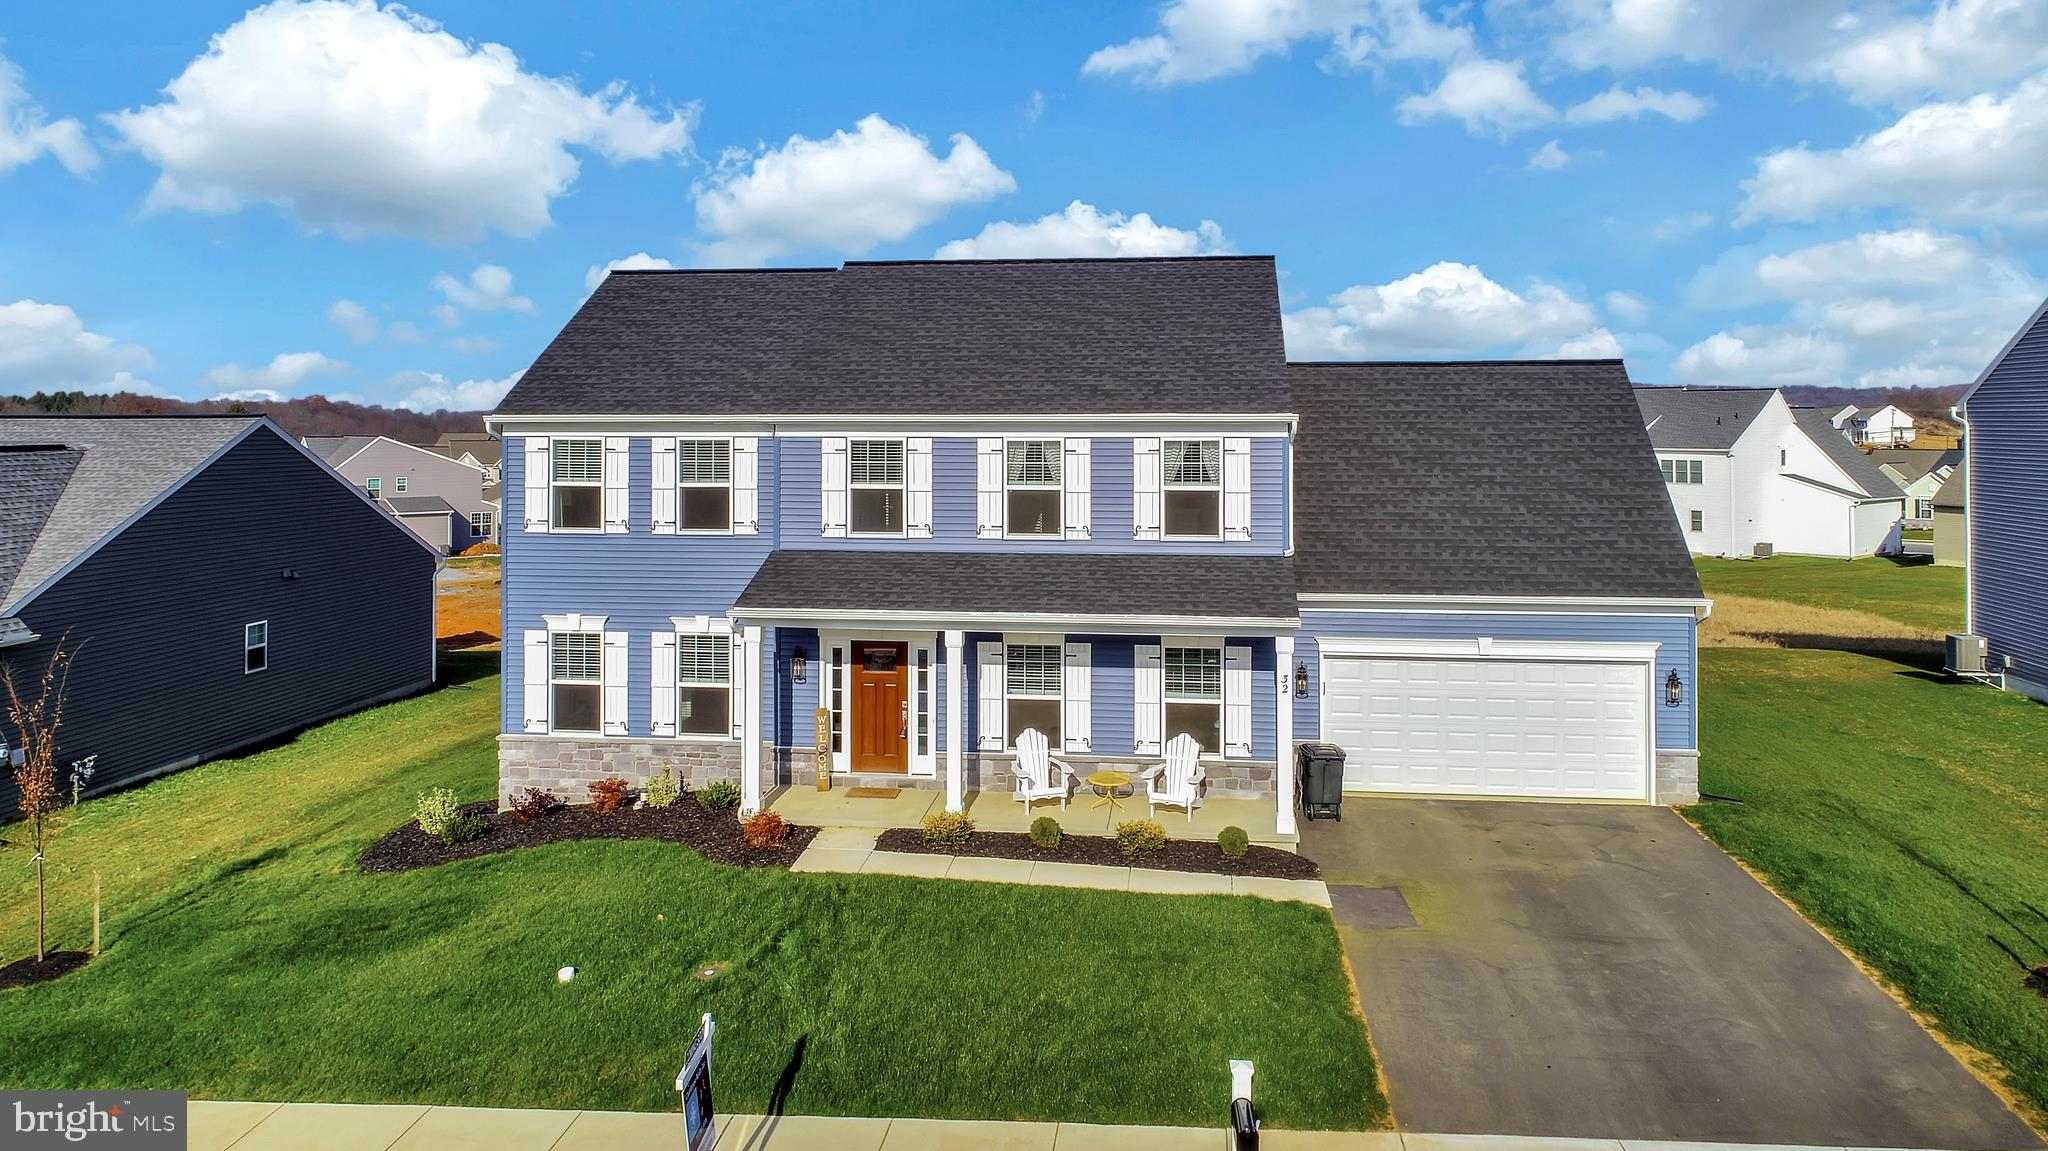 32 BLUE JAY WAY, ANNVILLE, PA 17003